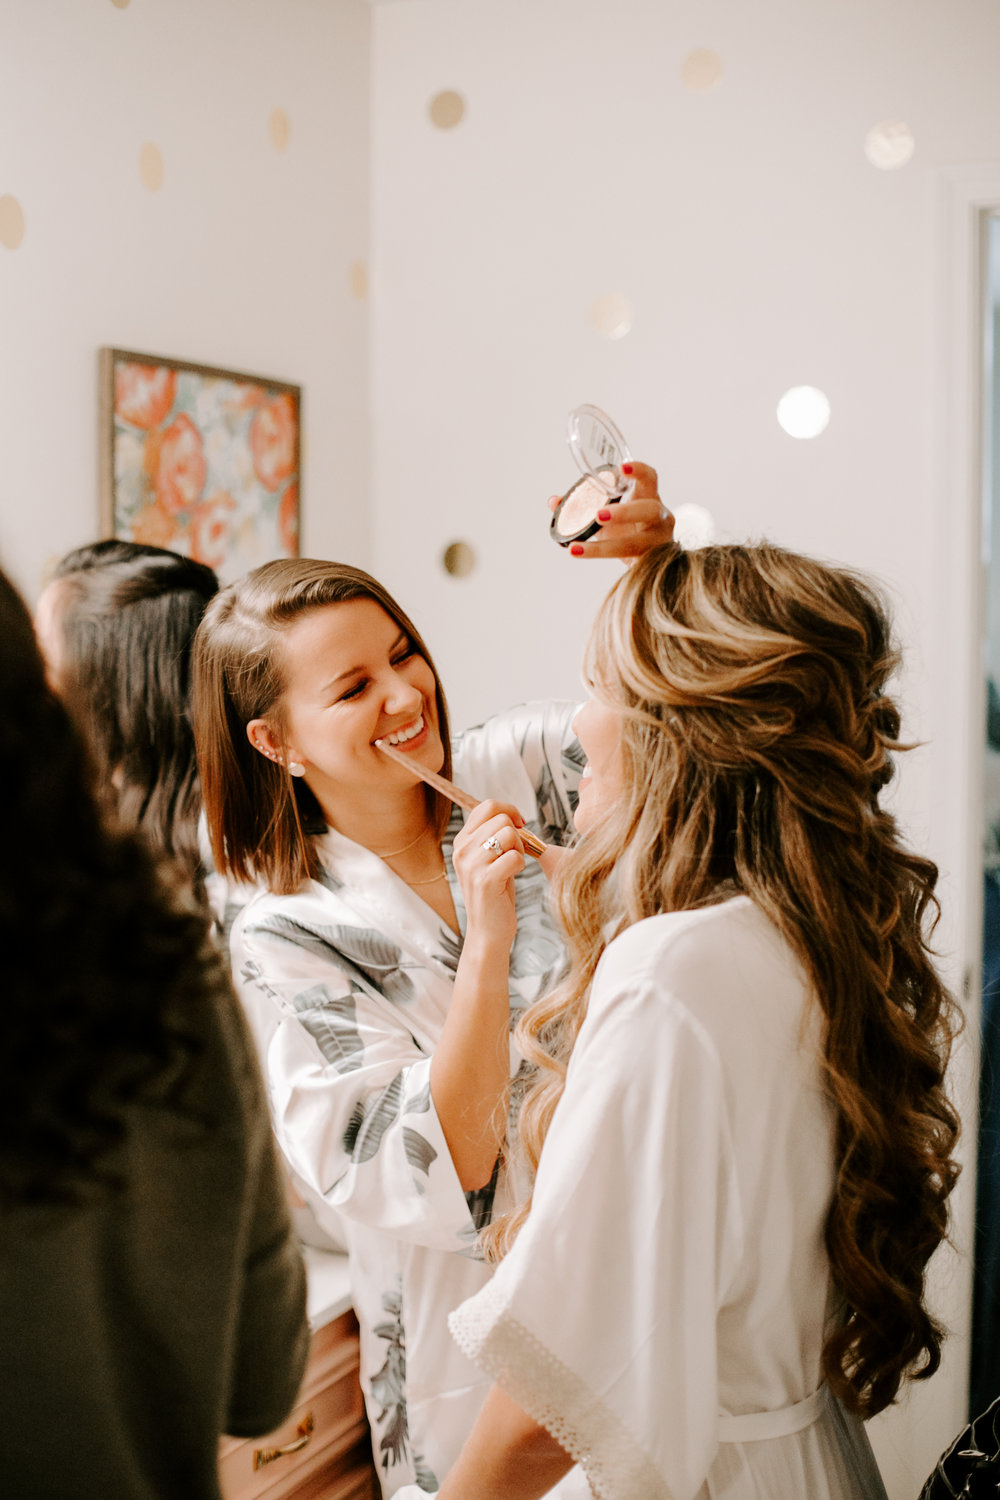 Ashleigh and Jordan Wedding at Hillcrest Country Club in Indianapolis Indiana by Emily Elyse Wehner Photography LLC-18.jpg